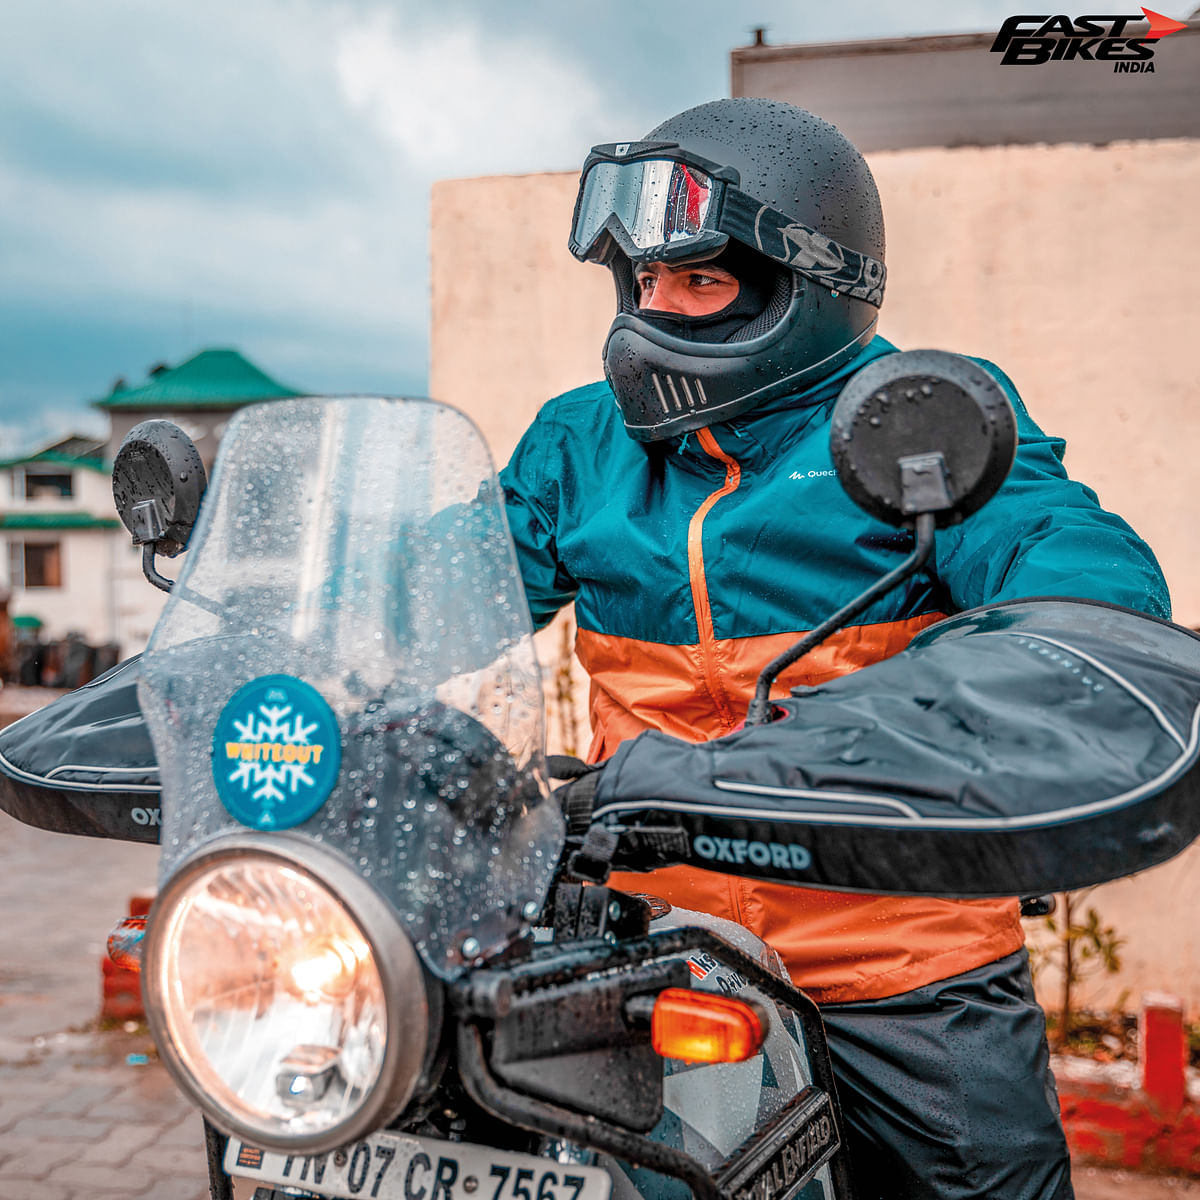 Vijay Parmar Column – The gear you'll need to deal with the elements